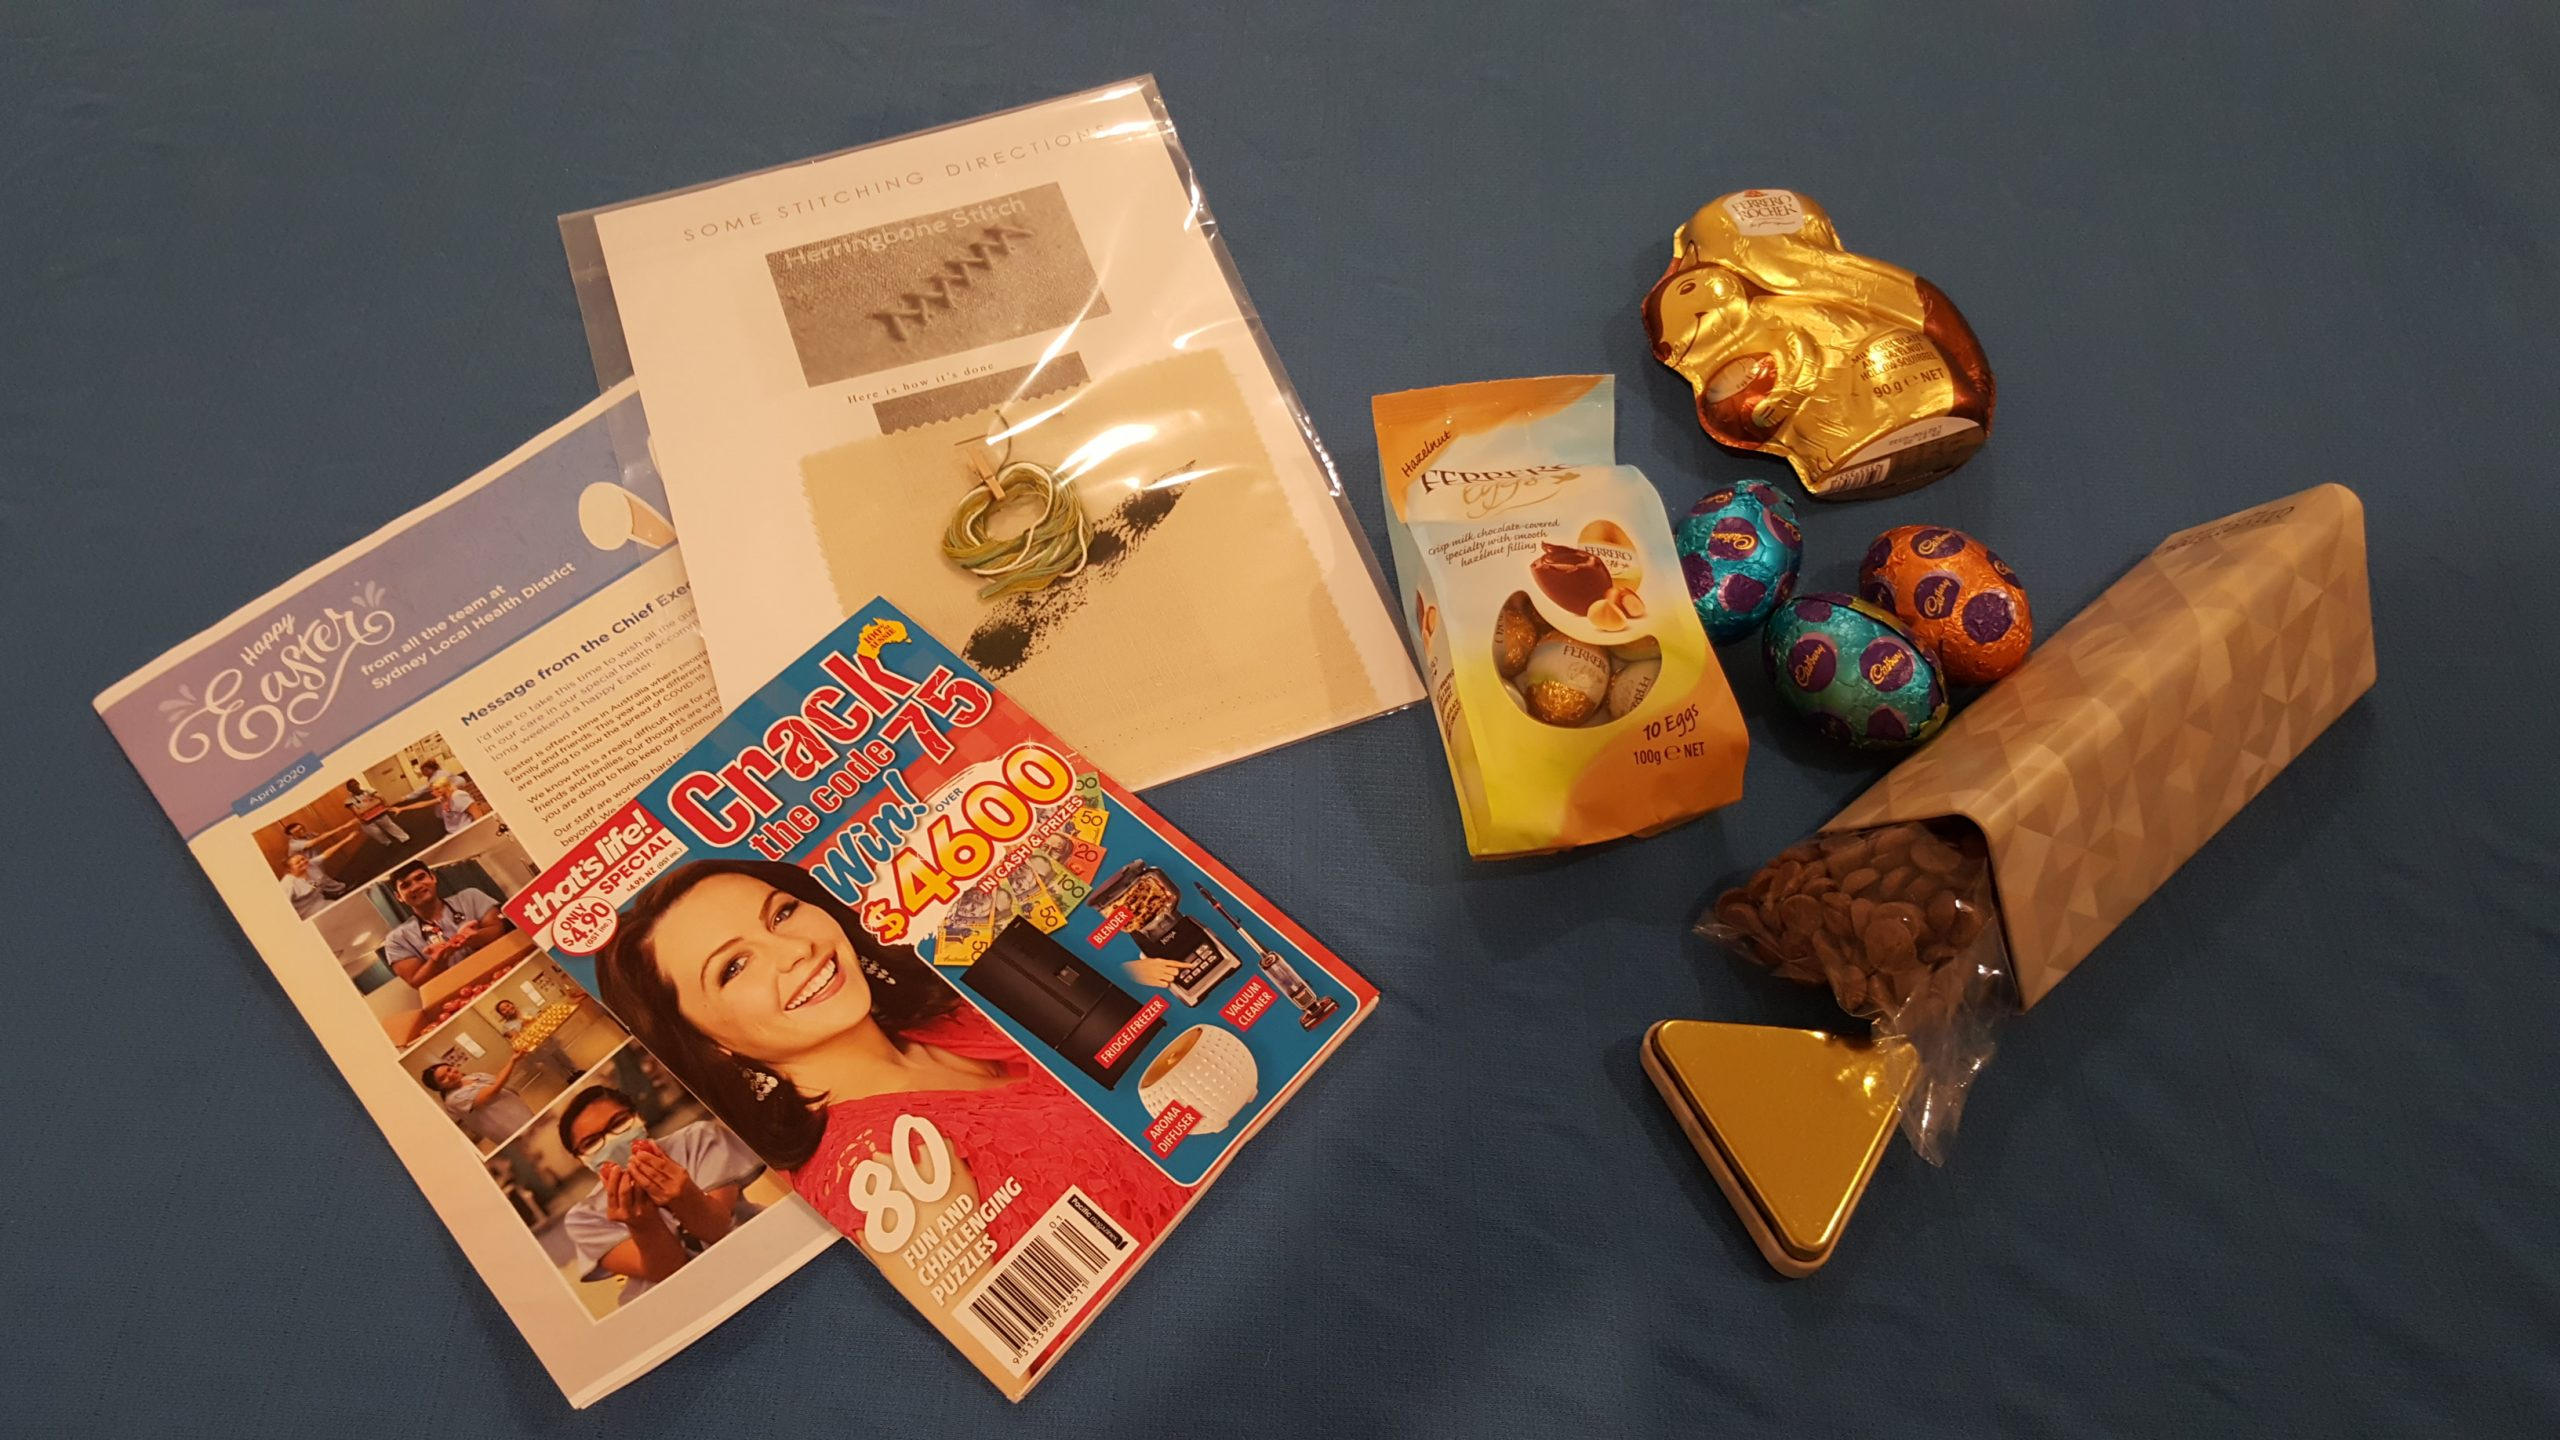 A care package received while in hotel quarantine including embroidery kit, puzzle and books